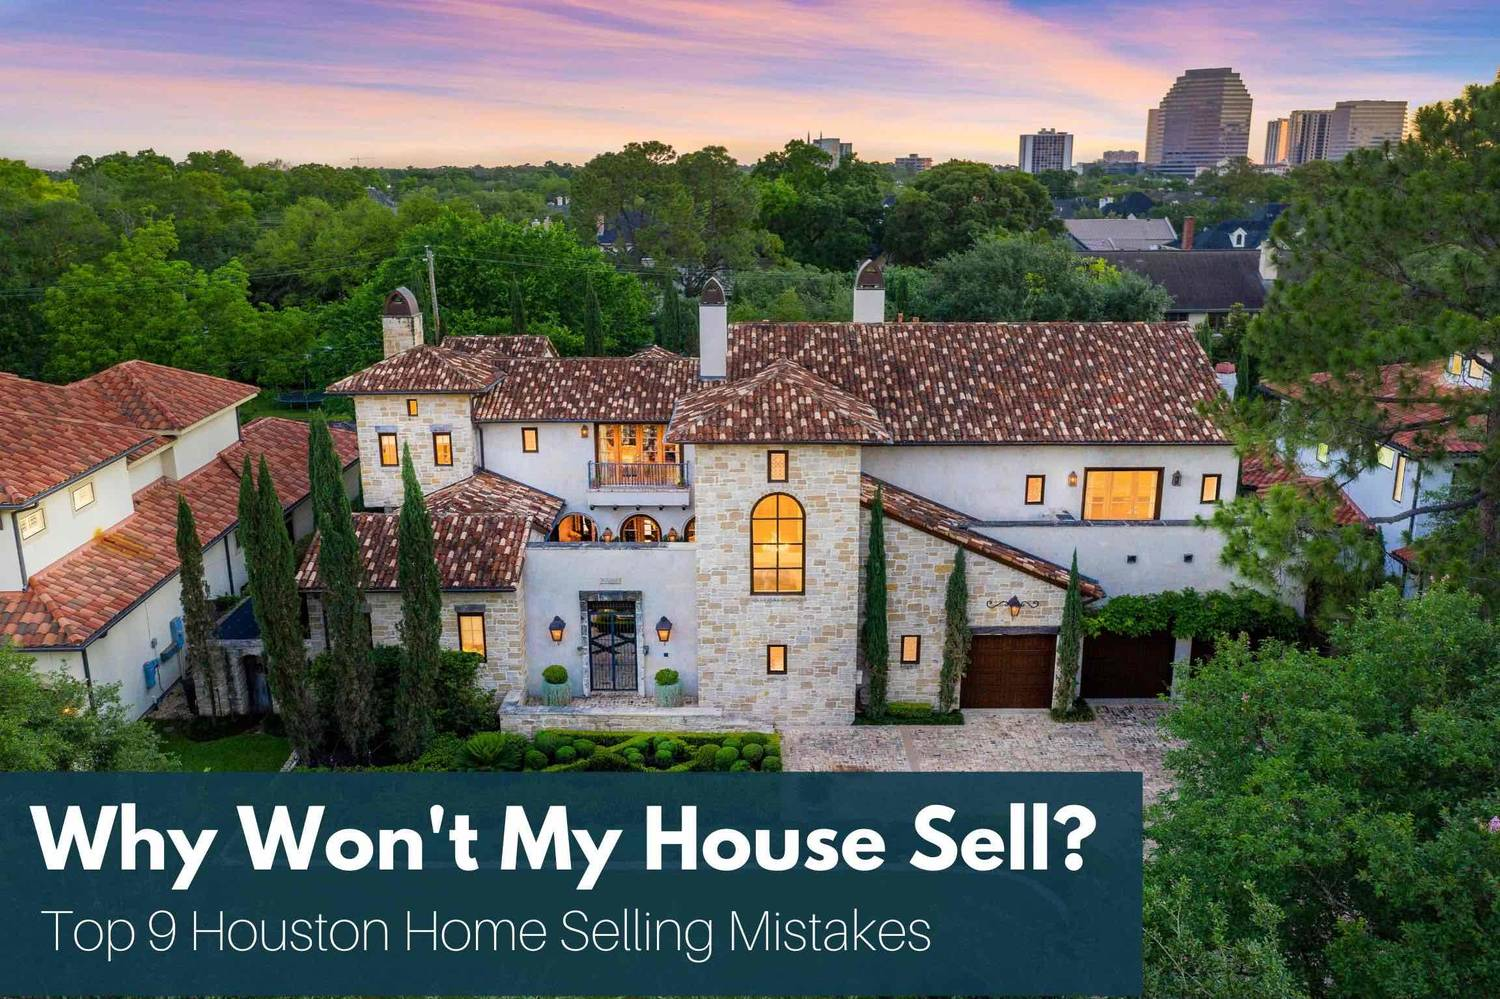 Why Won't My House Sell? Top 9 Houston Home Selling Mistakes To Avoid